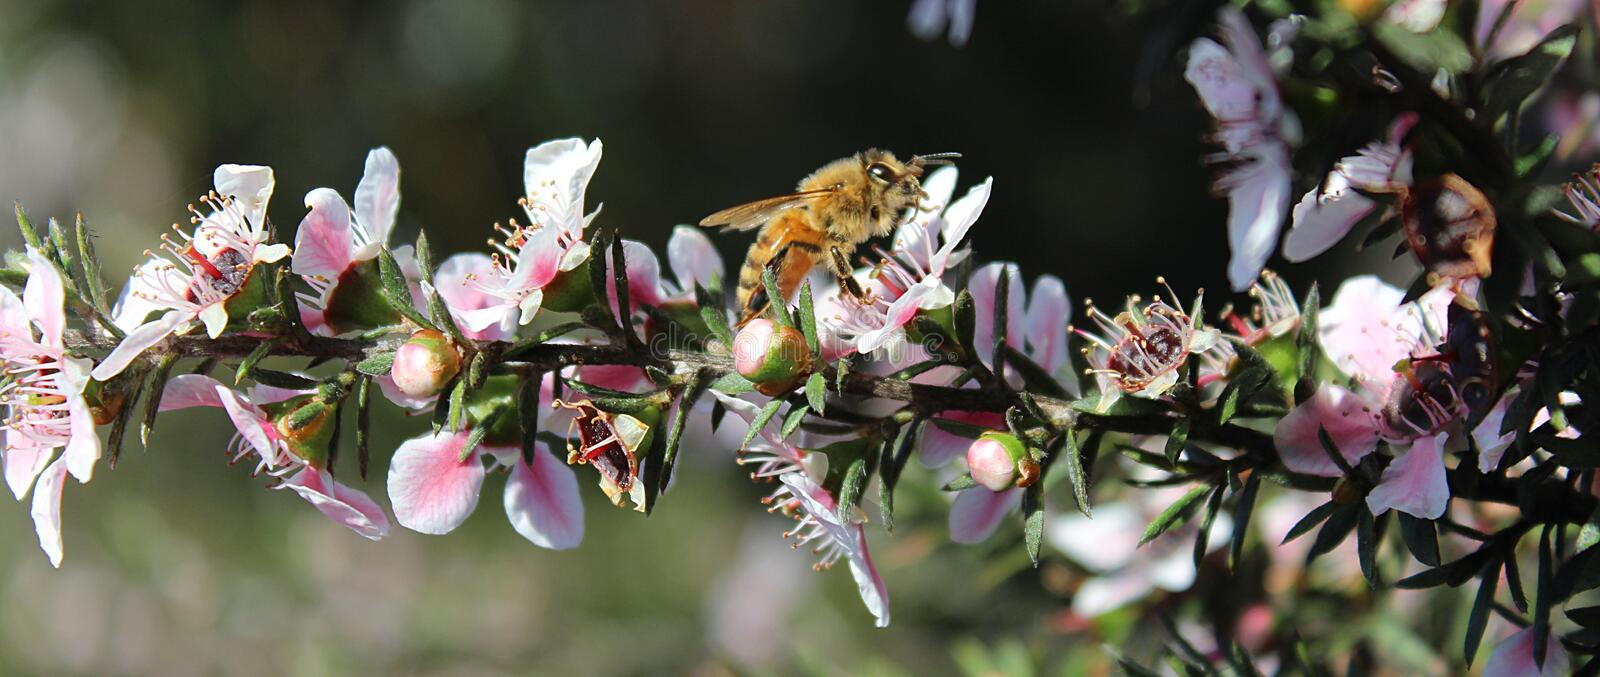 Honey Bee on Manuka Flower. Honey bee gathering pollen from a pink manuka flower royalty free stock images